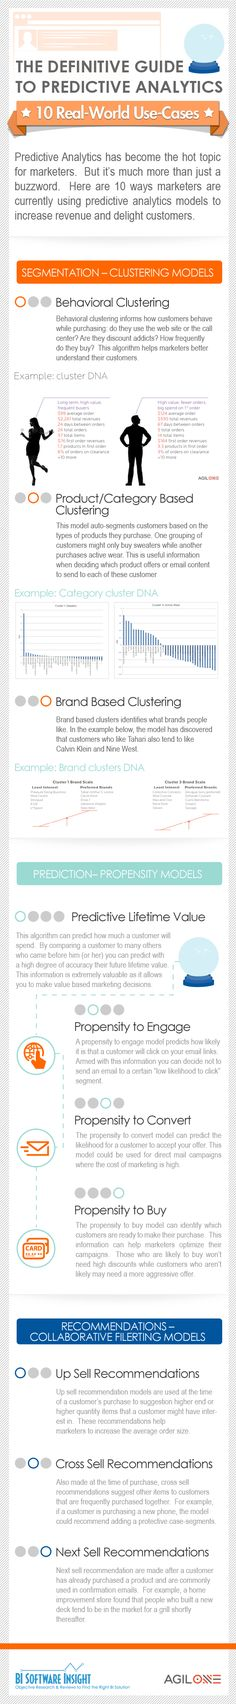 Predictive analytics is part of audience targeting, using behavioral clusters, brand-based clusters, likelihood-to-buy algorithms, and many more predictive models. This infographic illustrates 10 real-world use cases of predictive analytics.